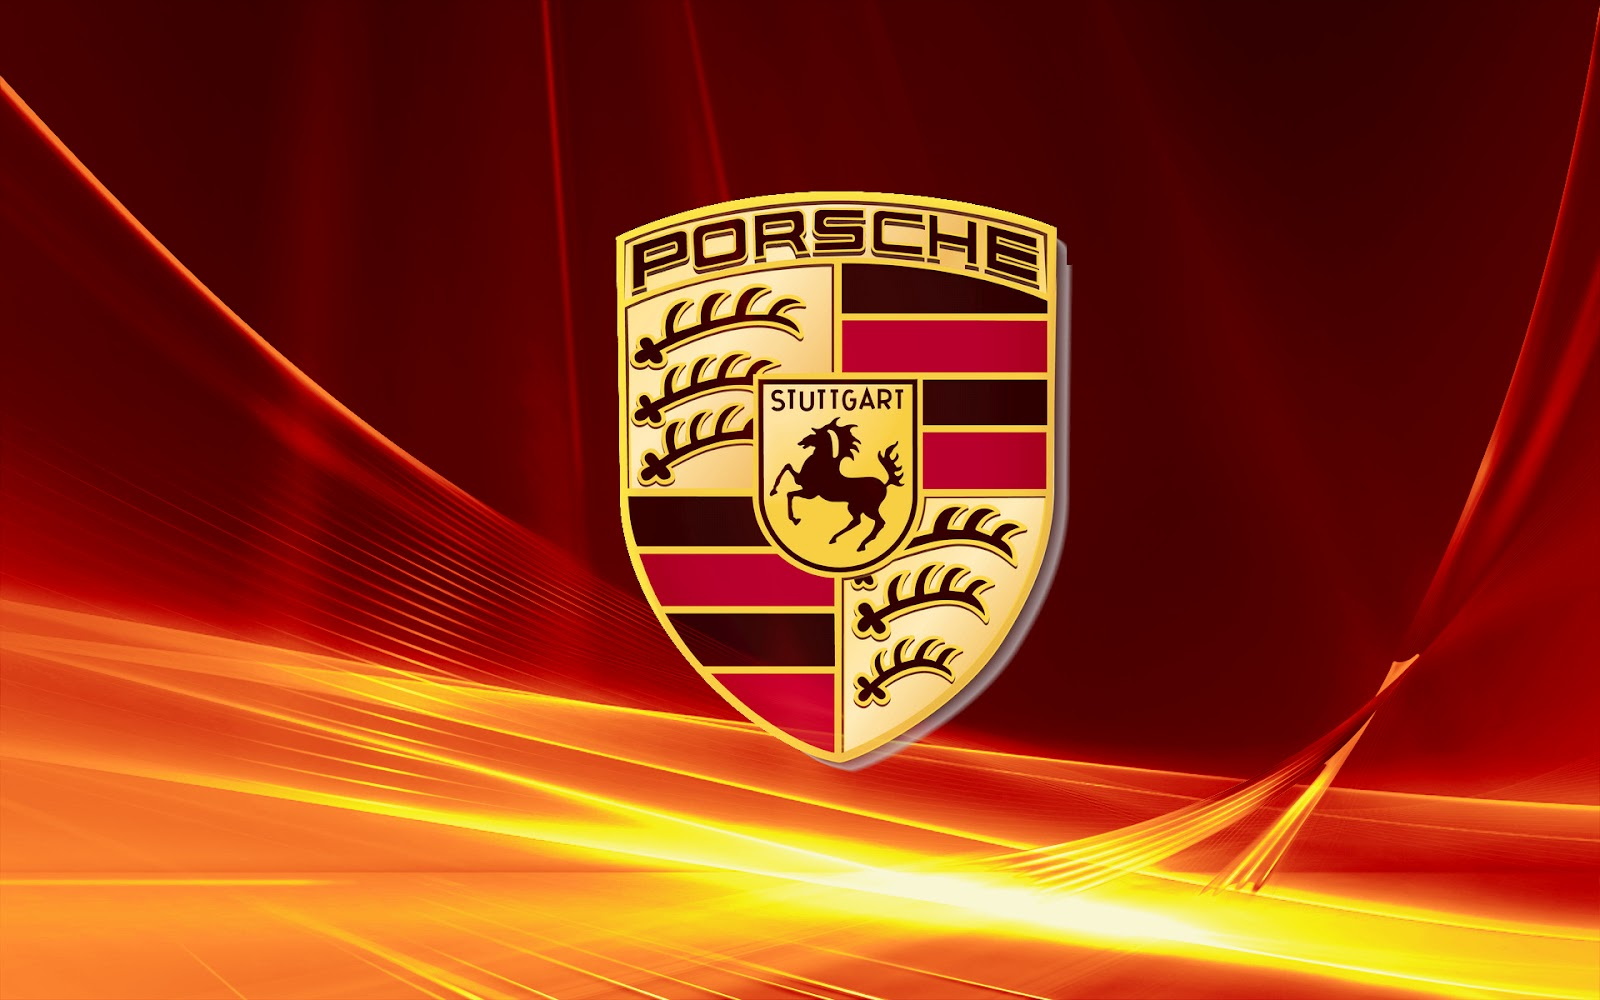 Porsche logo wallpaper cars hd wallpapers for Wallpaper wallpaper wallpaper